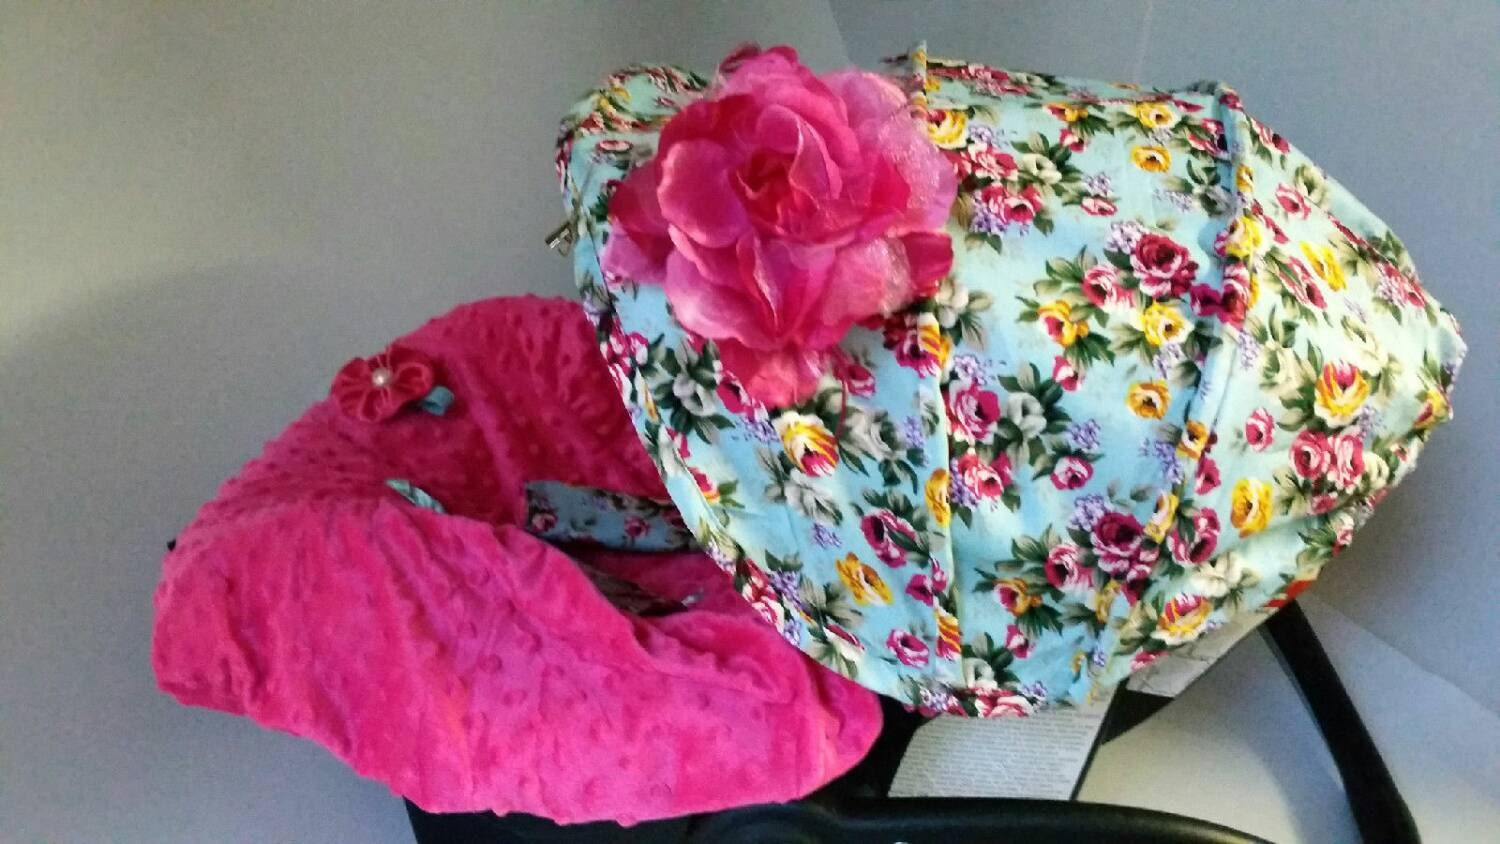 Baby Car Seat Cover Canopy Infant Car Seat Cover Canopy Floral Print for Baby Girl Car Seat Cover fit most Infant car seat & Baby Car Seat Cover Canopy Infant Car Seat Cover Canopy Floral ...